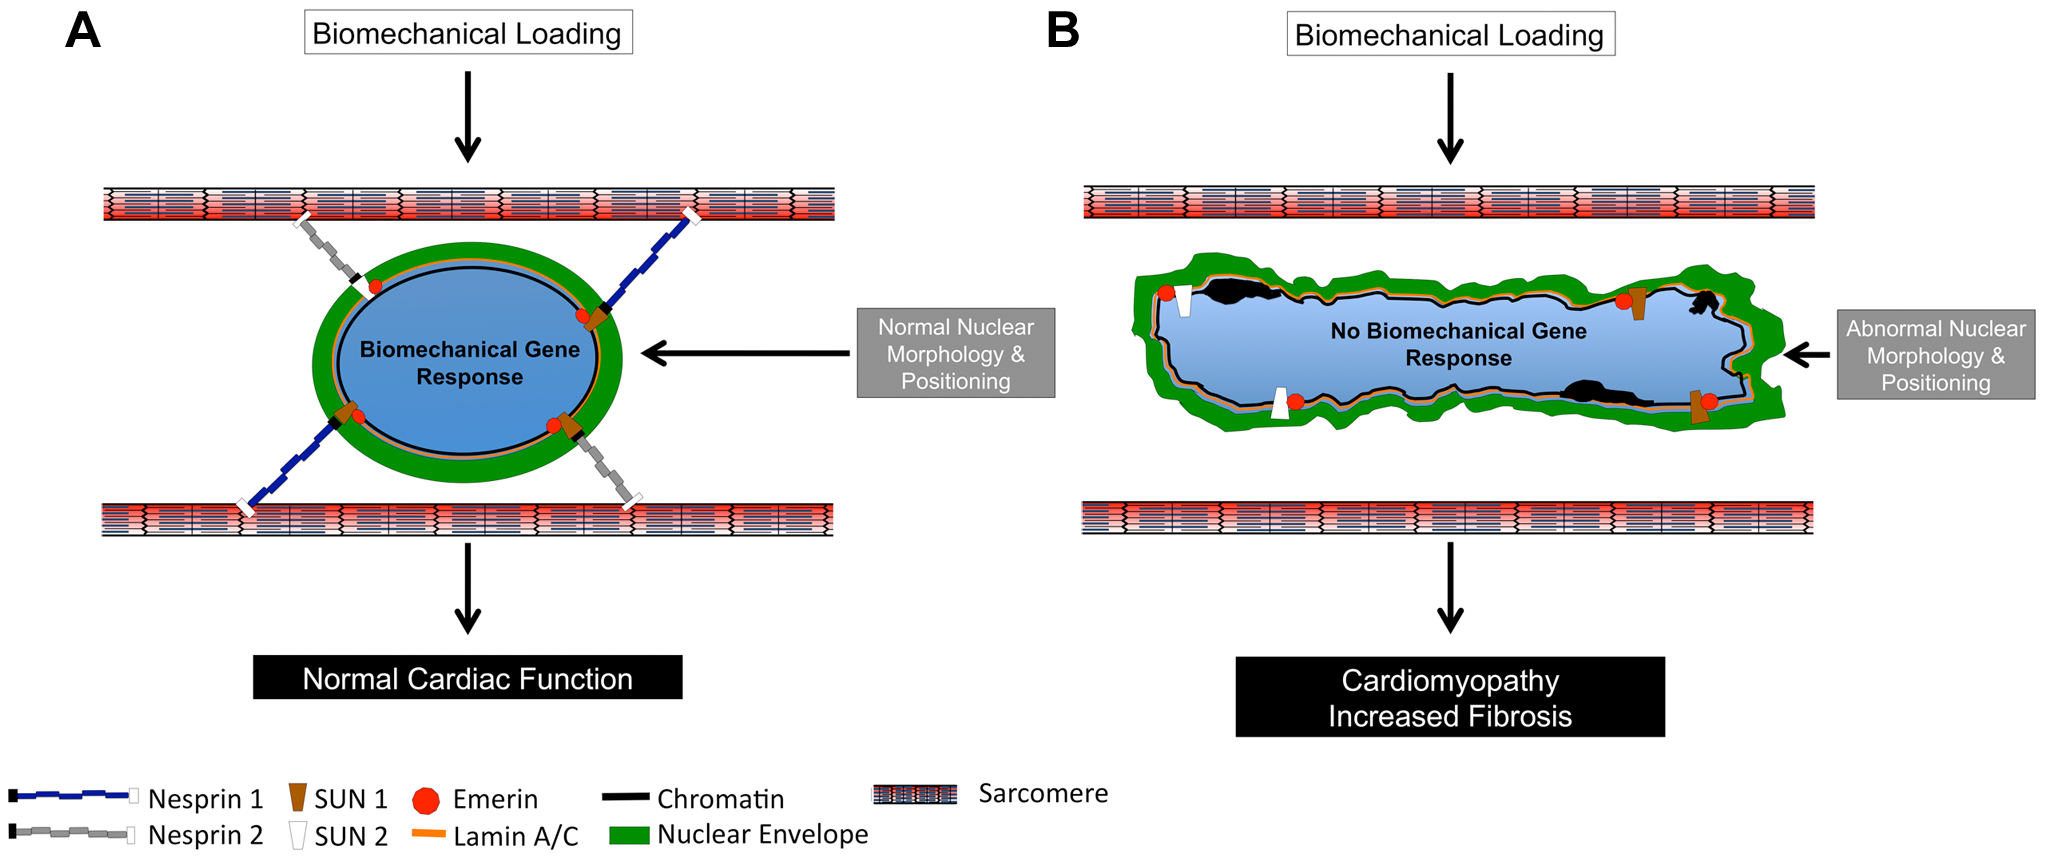 Model of Nesprin 1 and/or 2 loss in cardiomyocytes.